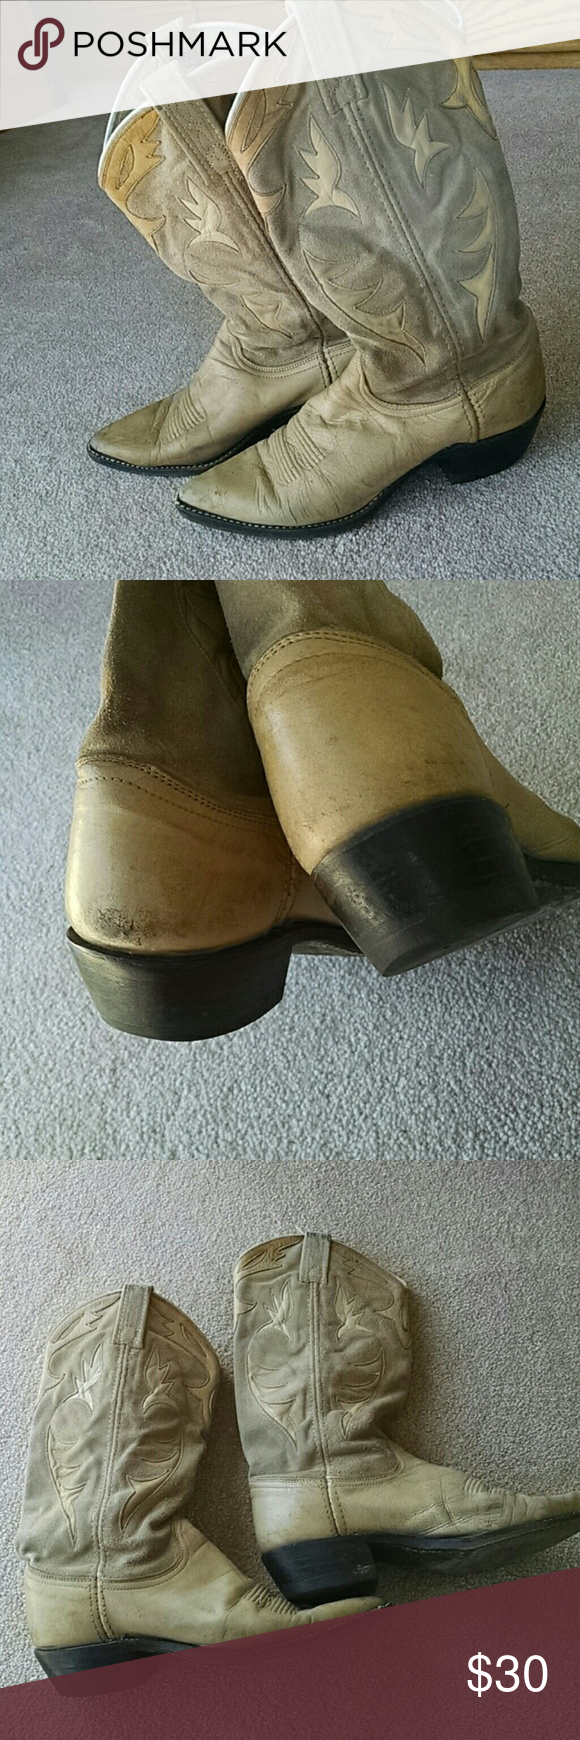 Dan Post boots Funky old Dan Post I bought in Carmel CA back in late 80s. Loved them to death! Lived on ranch so they were well used but if you like good leather quality buy em cheap! Lots of cowgirl life left in em. Marked 6.5 but I wore 7 n ok. Dan Post Shoes Heeled Boots